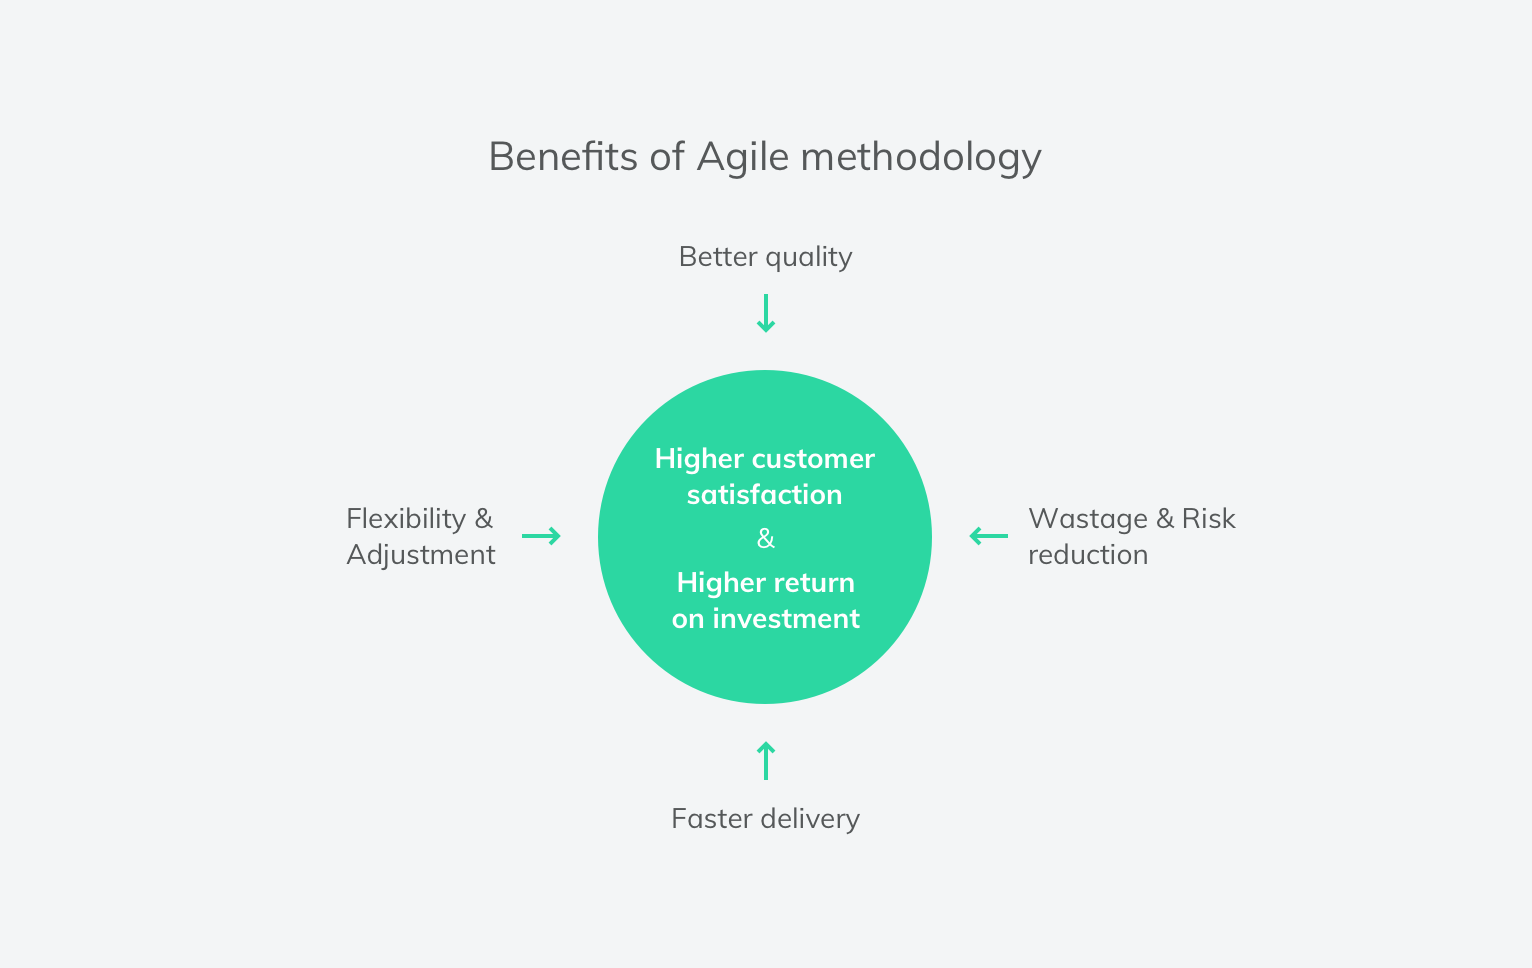 Benefits of agile methology